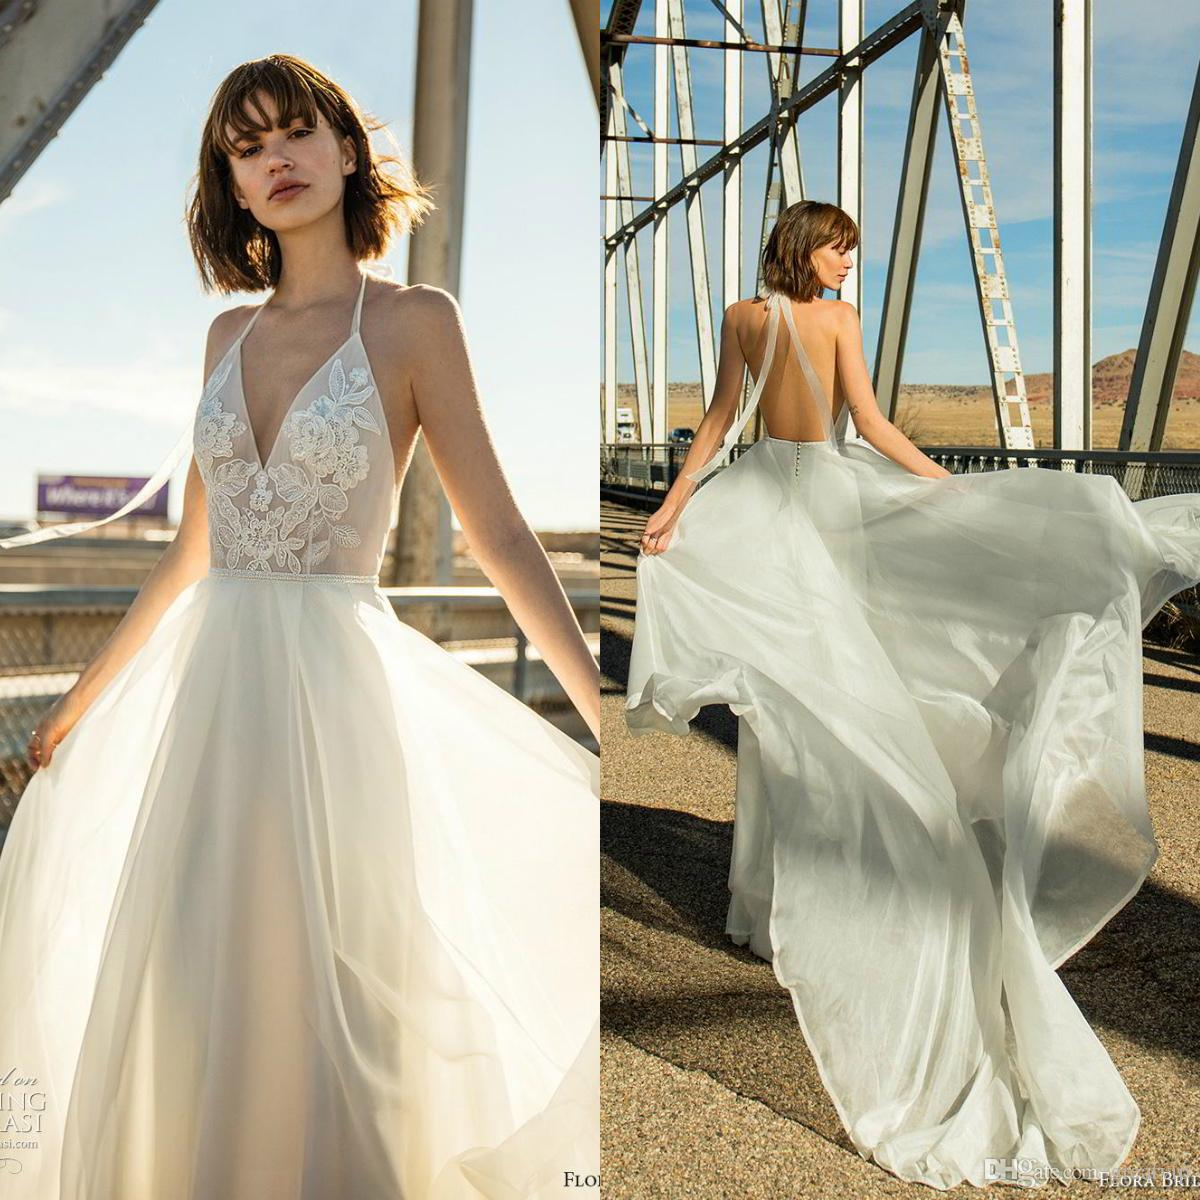 Floral 2019 Halter Beach Wedding Dresses Appliques Backless Chiffon Bridal  Gowns Plus Size Bohemia Wedding Dress robe de mariée